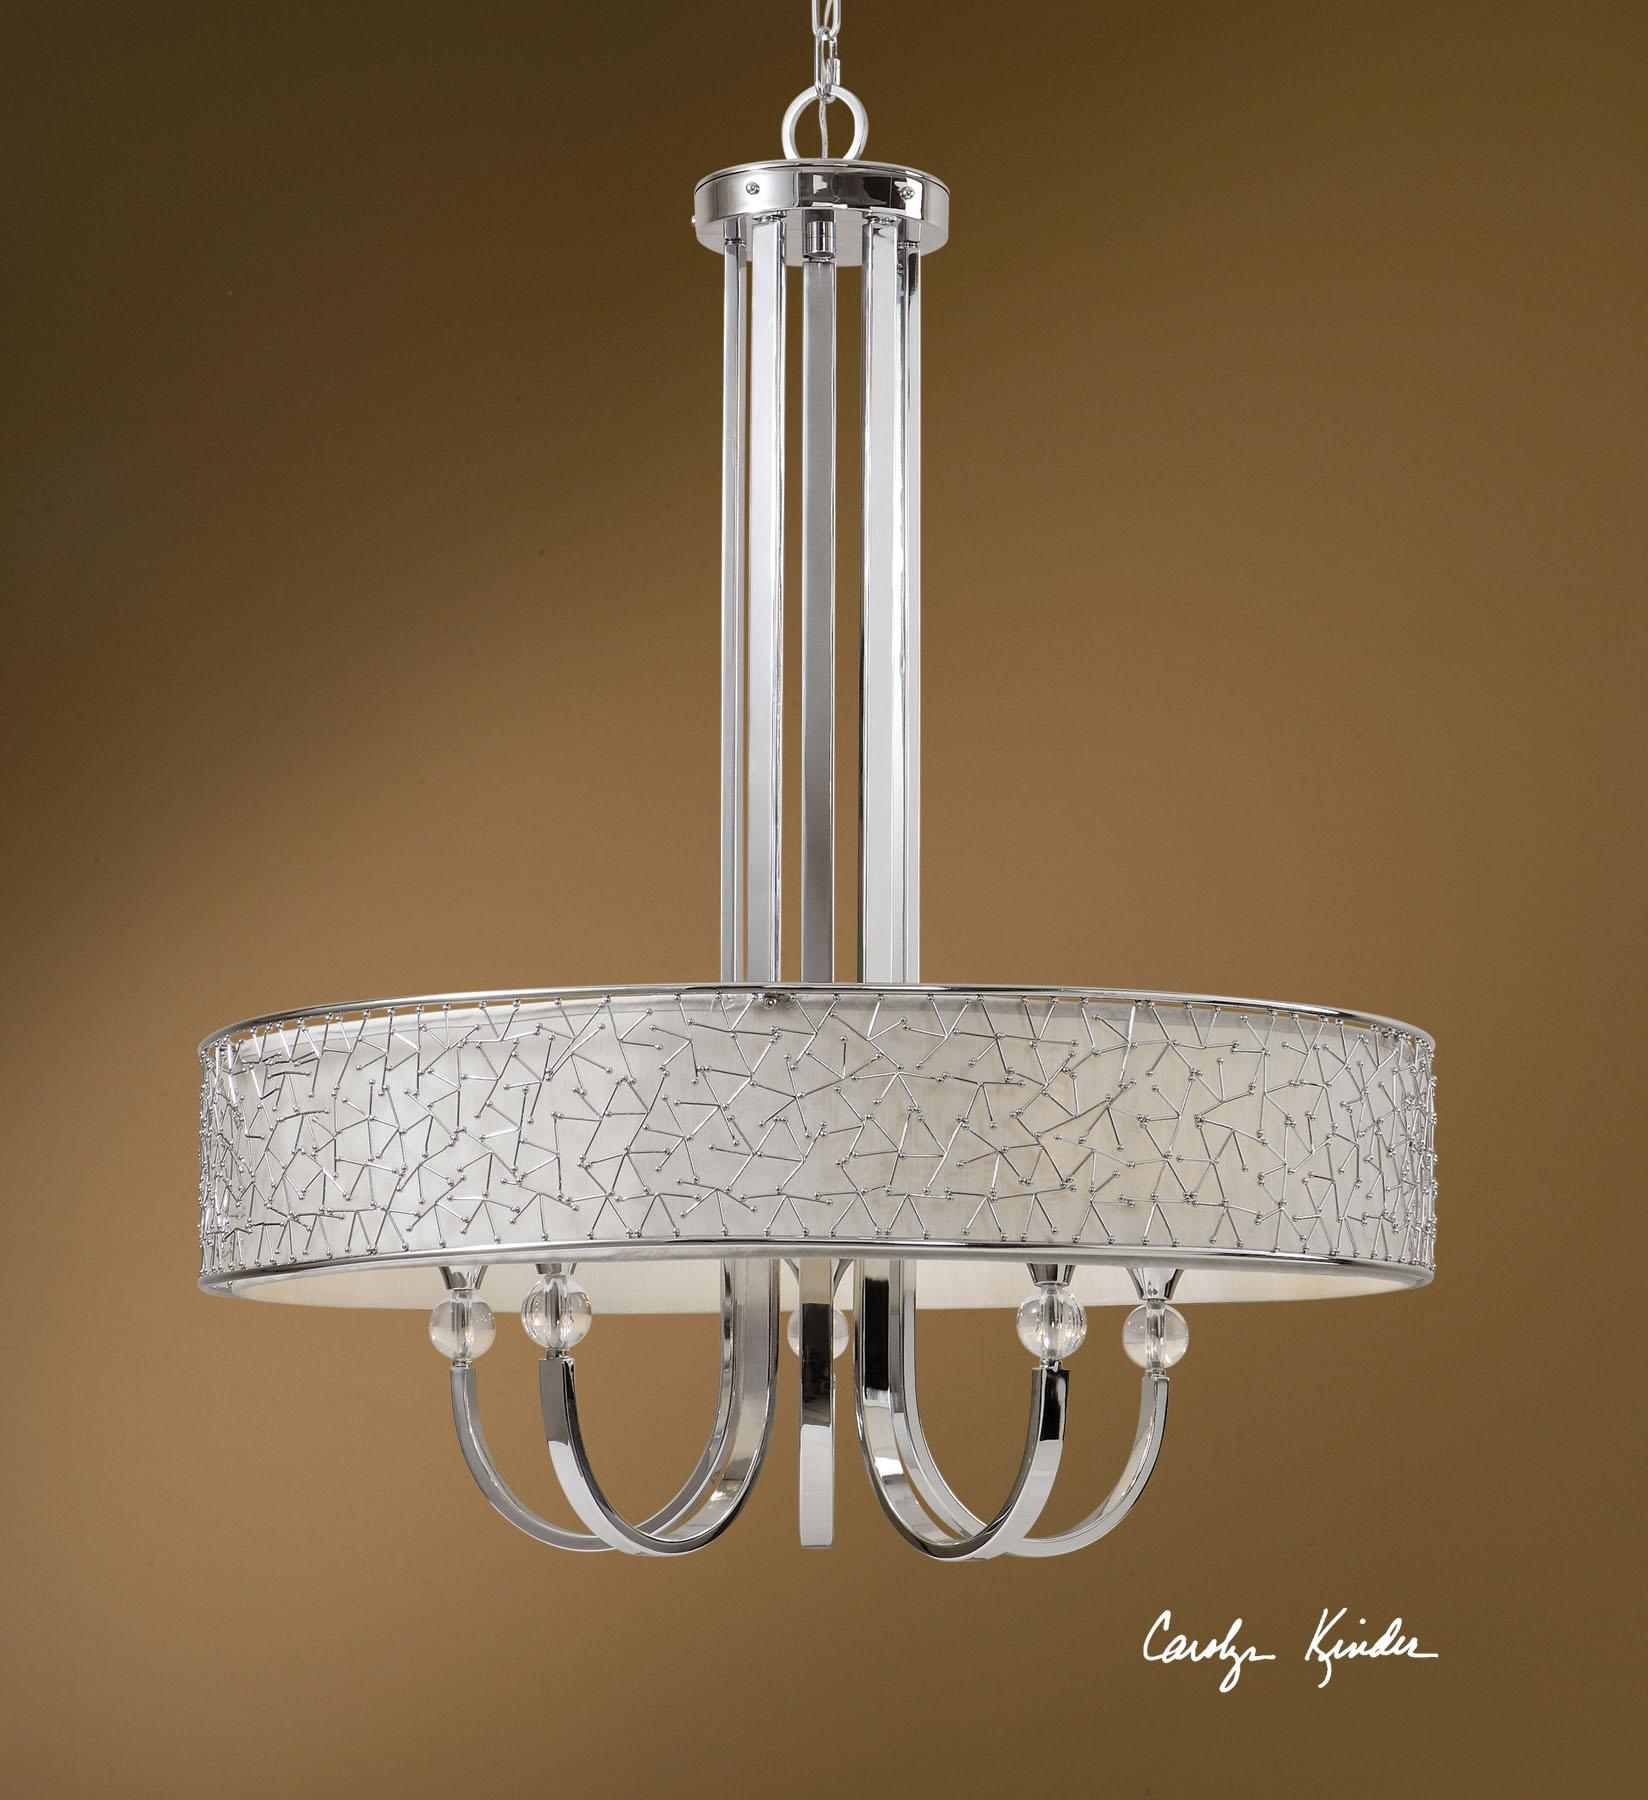 Uttermost Lighting Fixtures Brandon 5 Light Single Shade Chandelier - Item Number: 21233